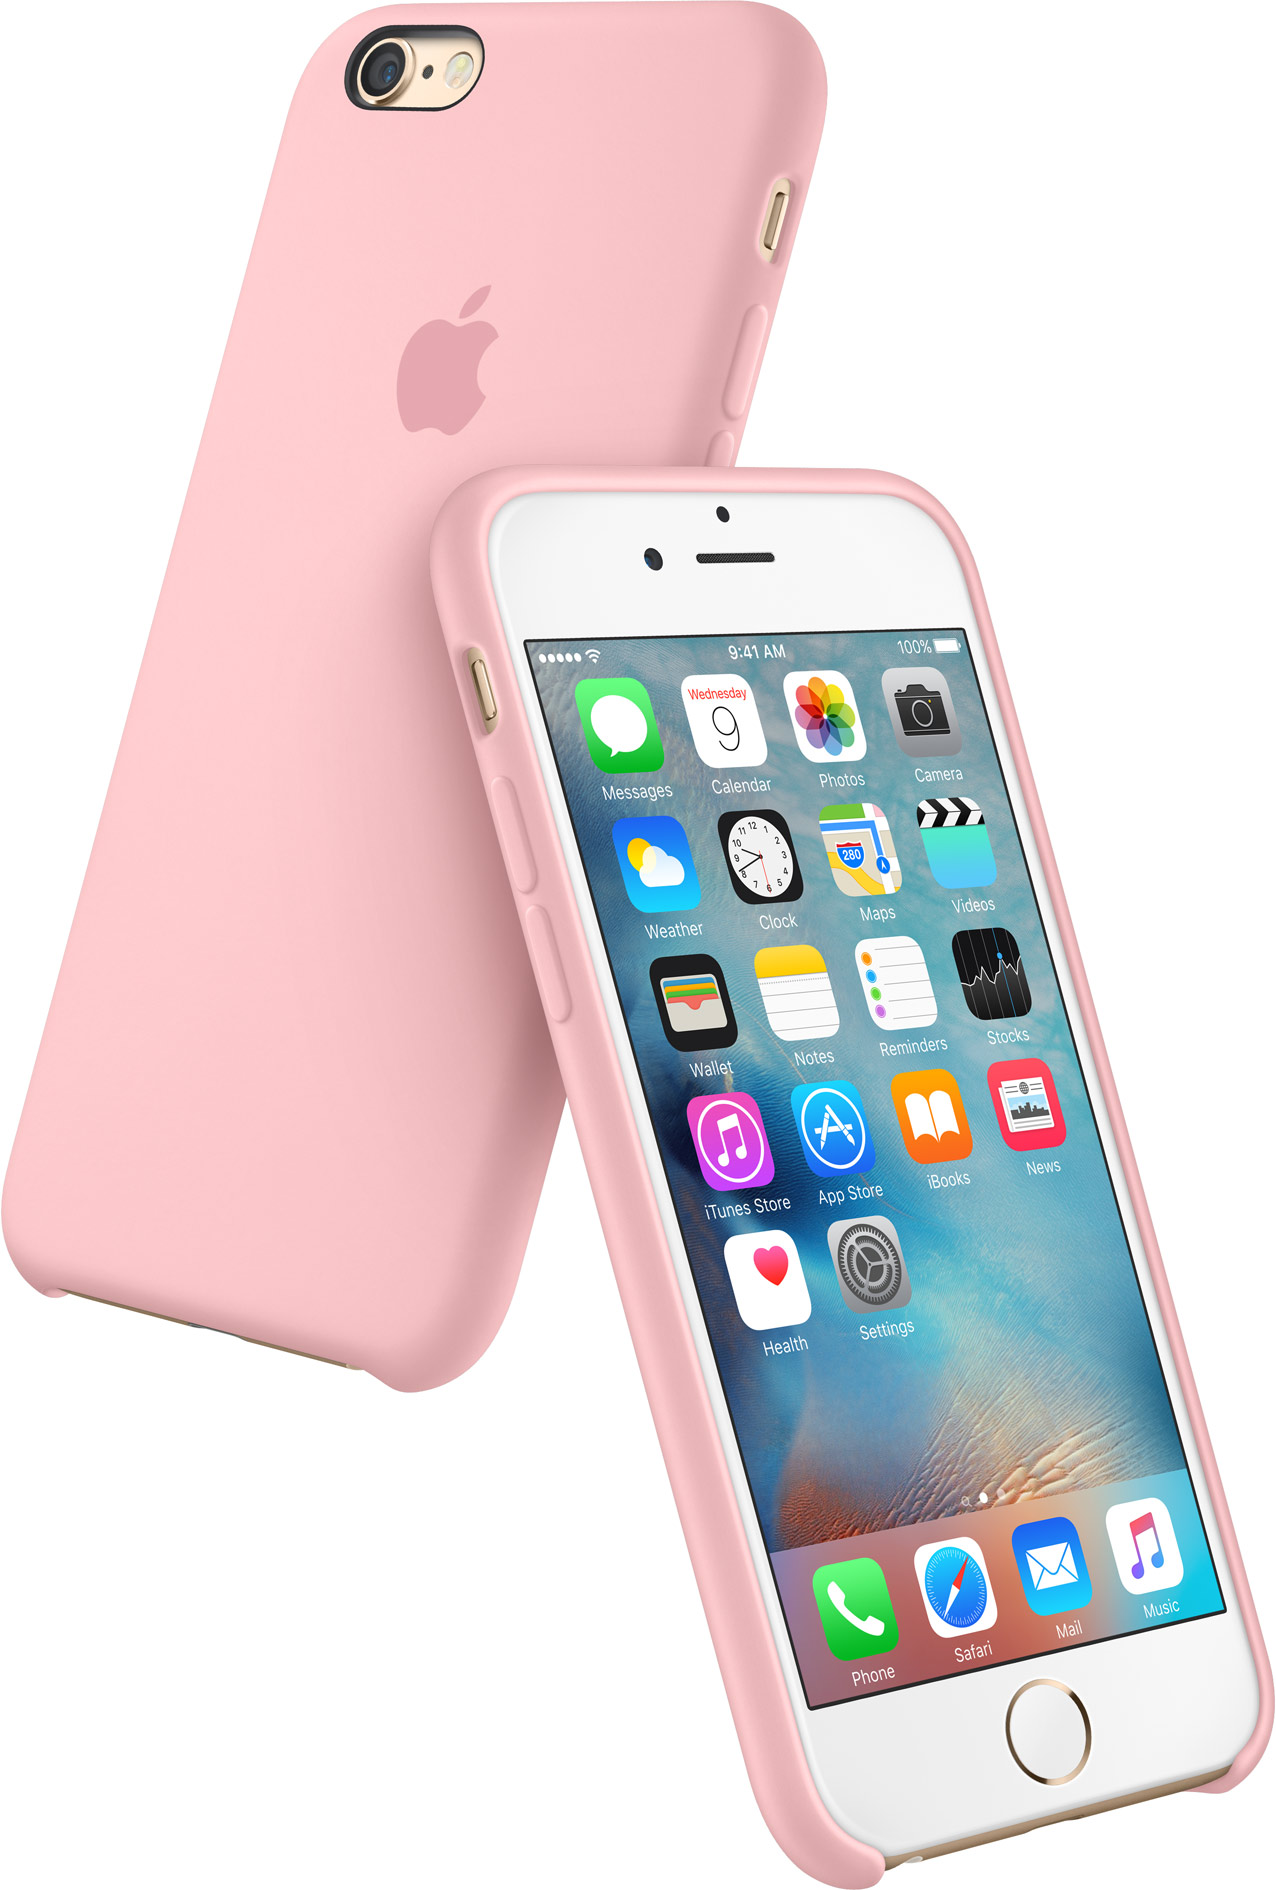 online retailer 3c30b d42a8 Apple's iPhone 6/6 Plus cases will fit the new iPhone 6s/6s Plus models